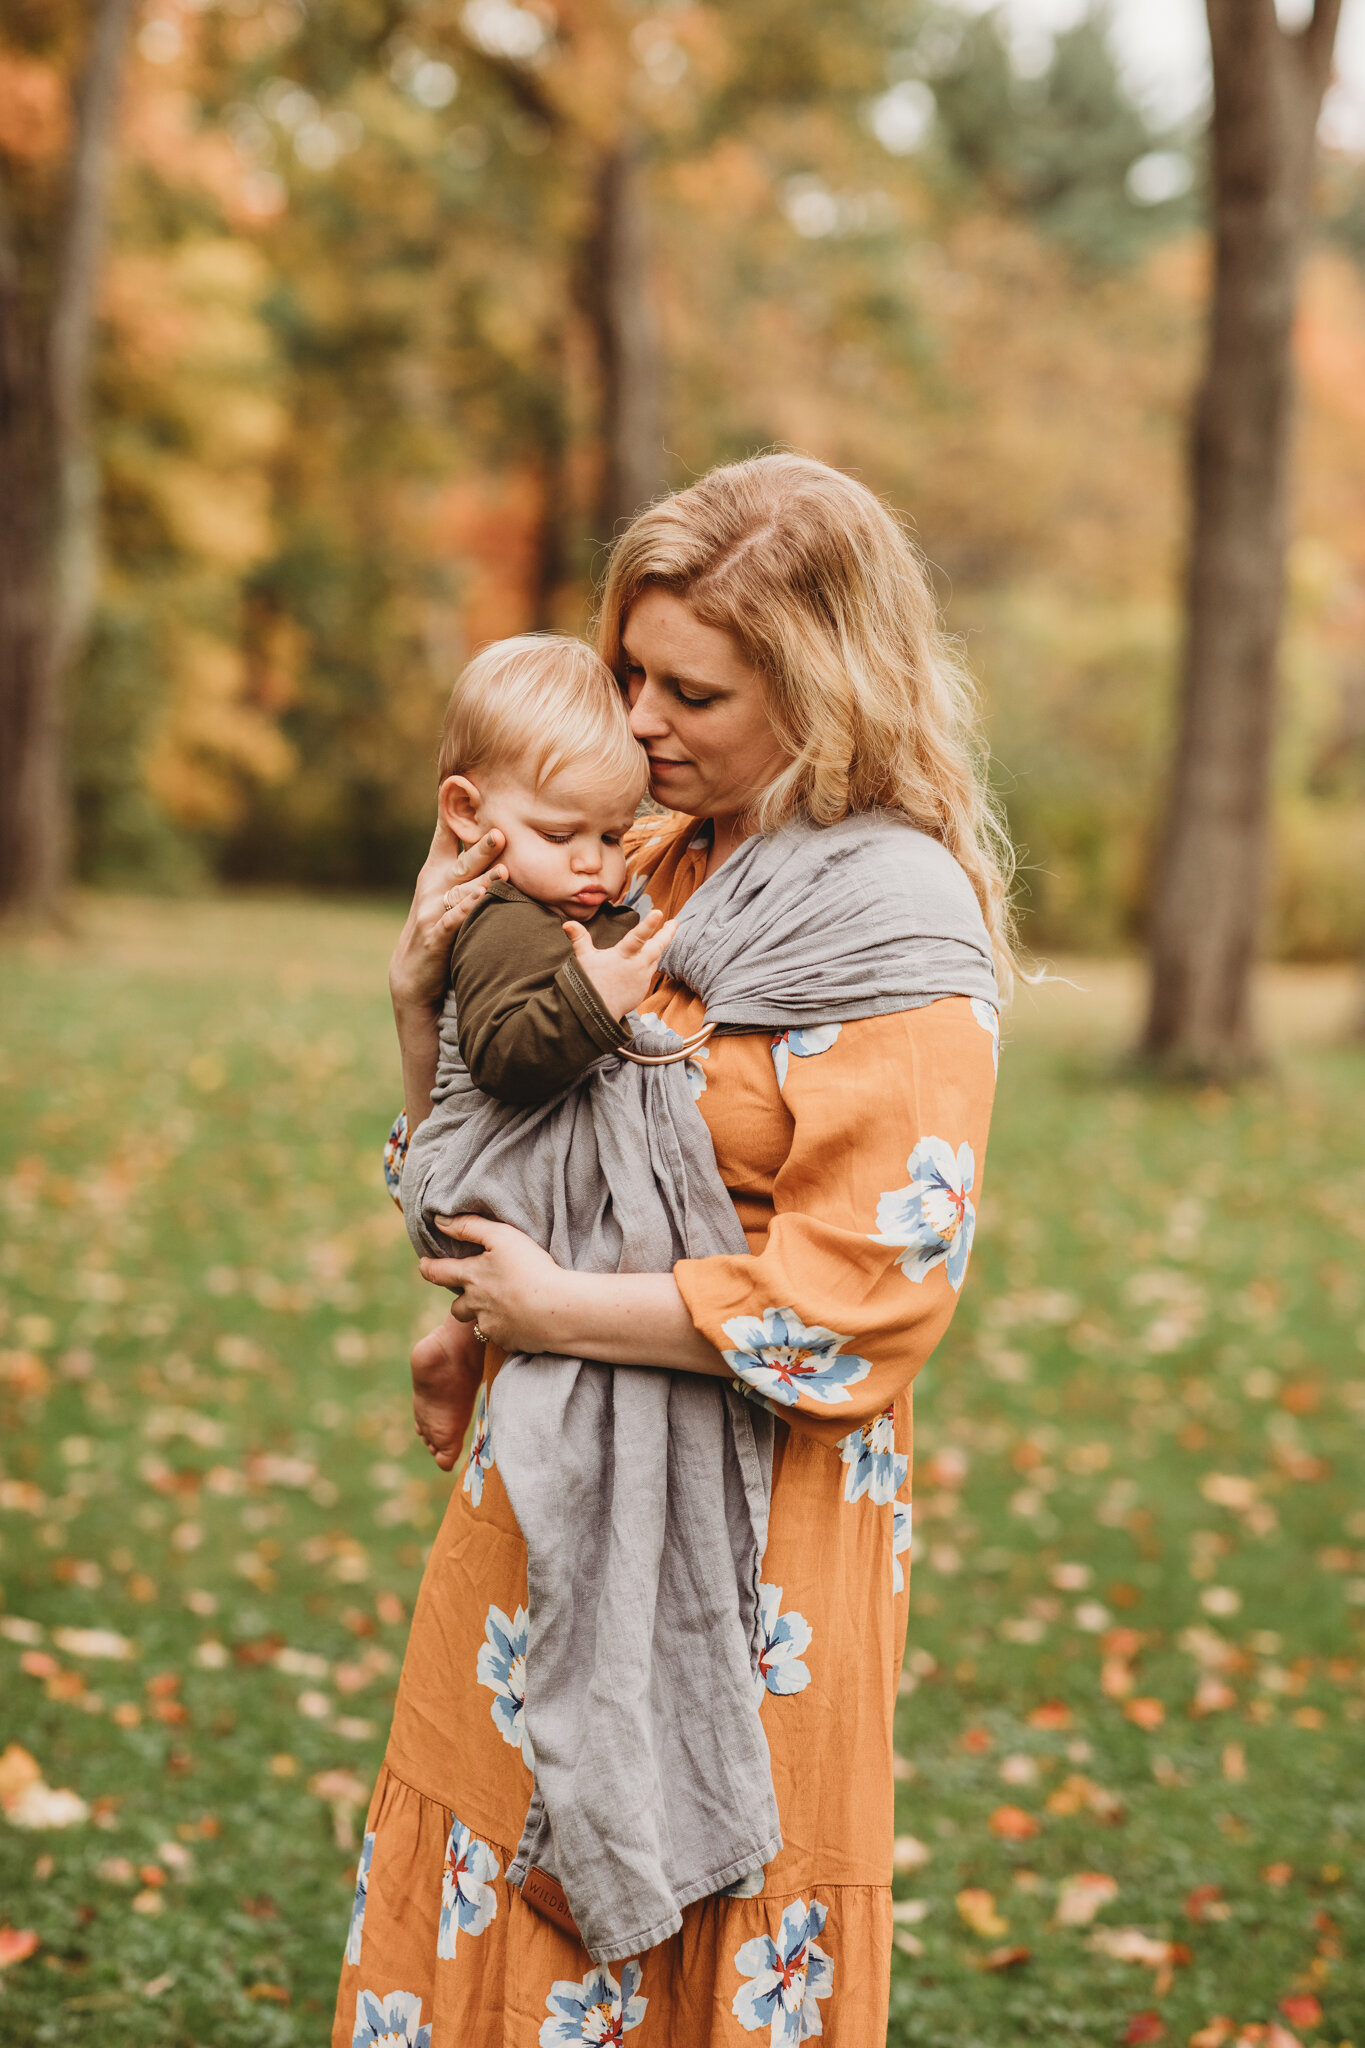 Sudbury family photography during the peak fall foliage season in Massachusetts. Concierge photography services at JLP include location scouting for the best foliage on the date of your session.